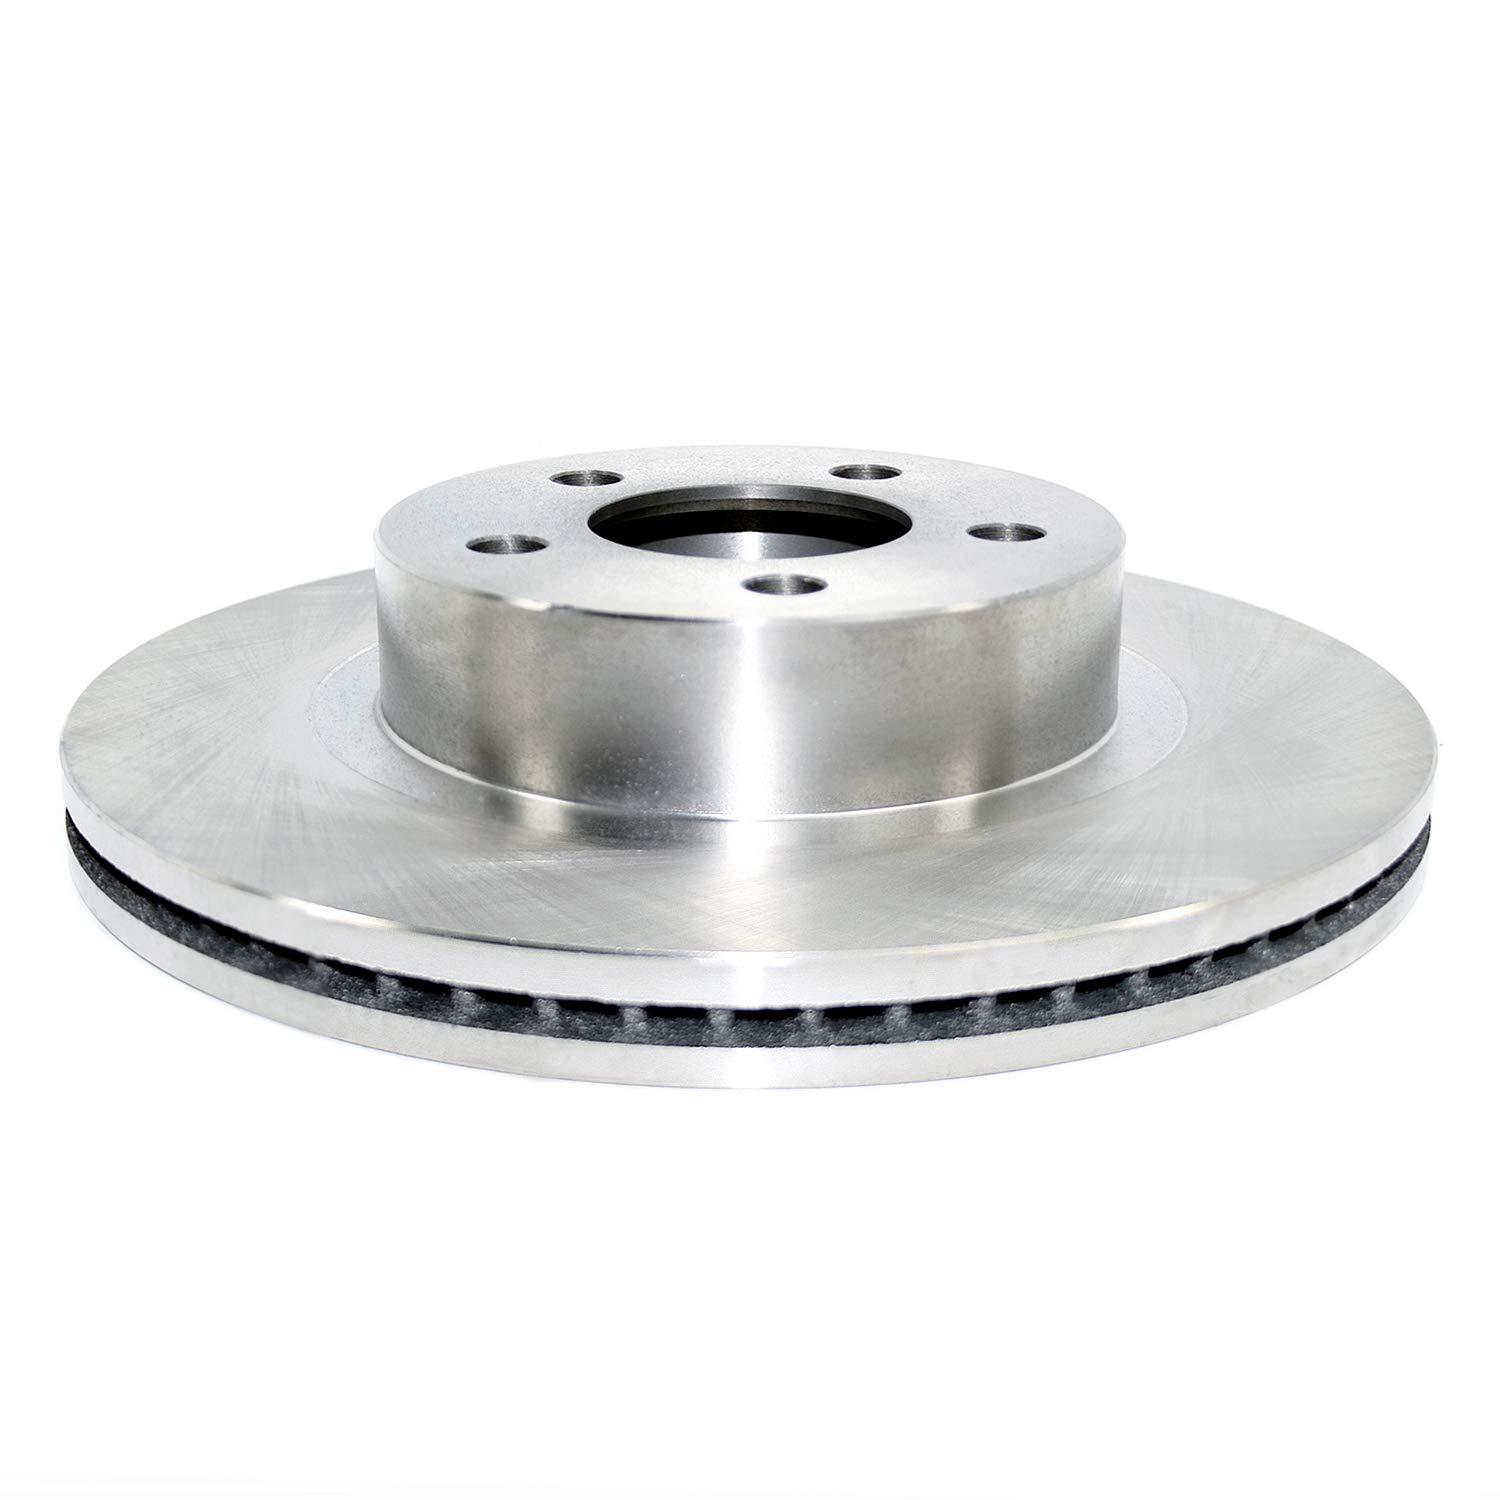 DuraGo BR54097 Front Vented Disc Brake Rotor